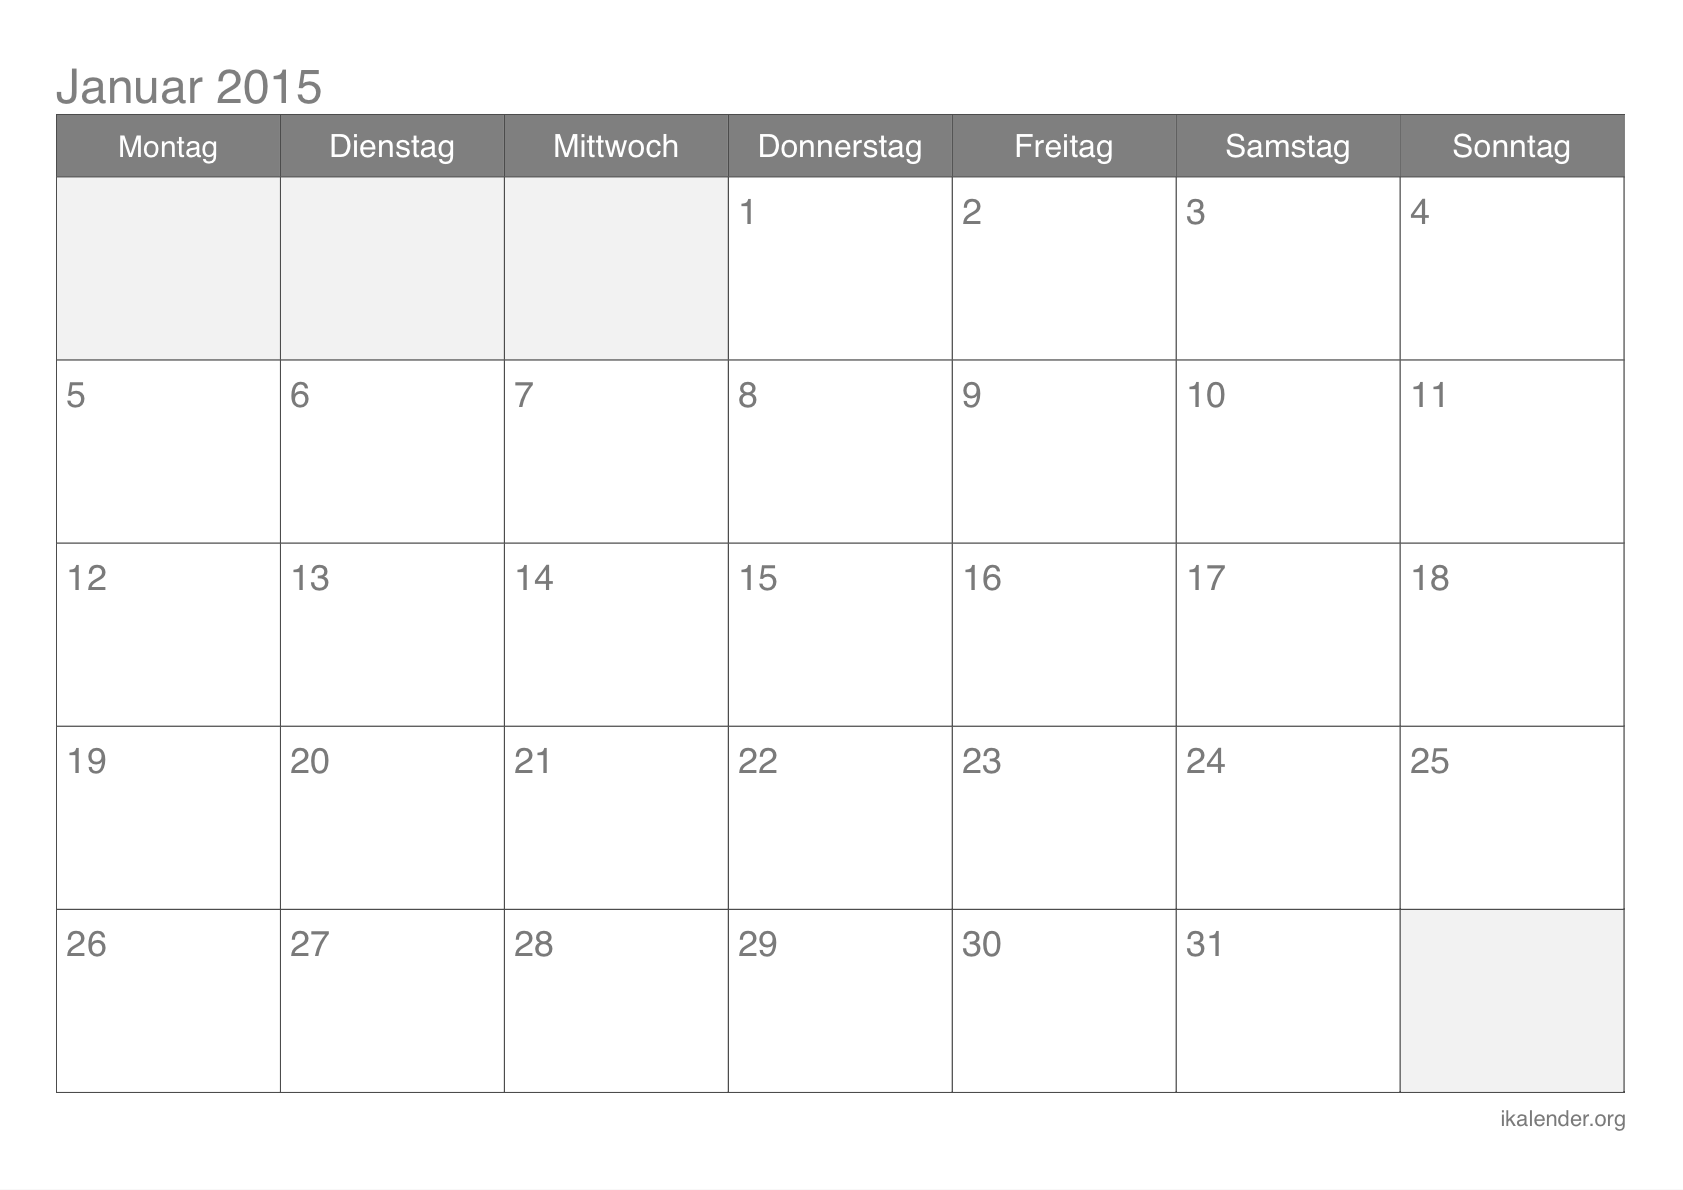 Januar Schedule 2015 Template/page/2 | Search Results | Calendar 2015